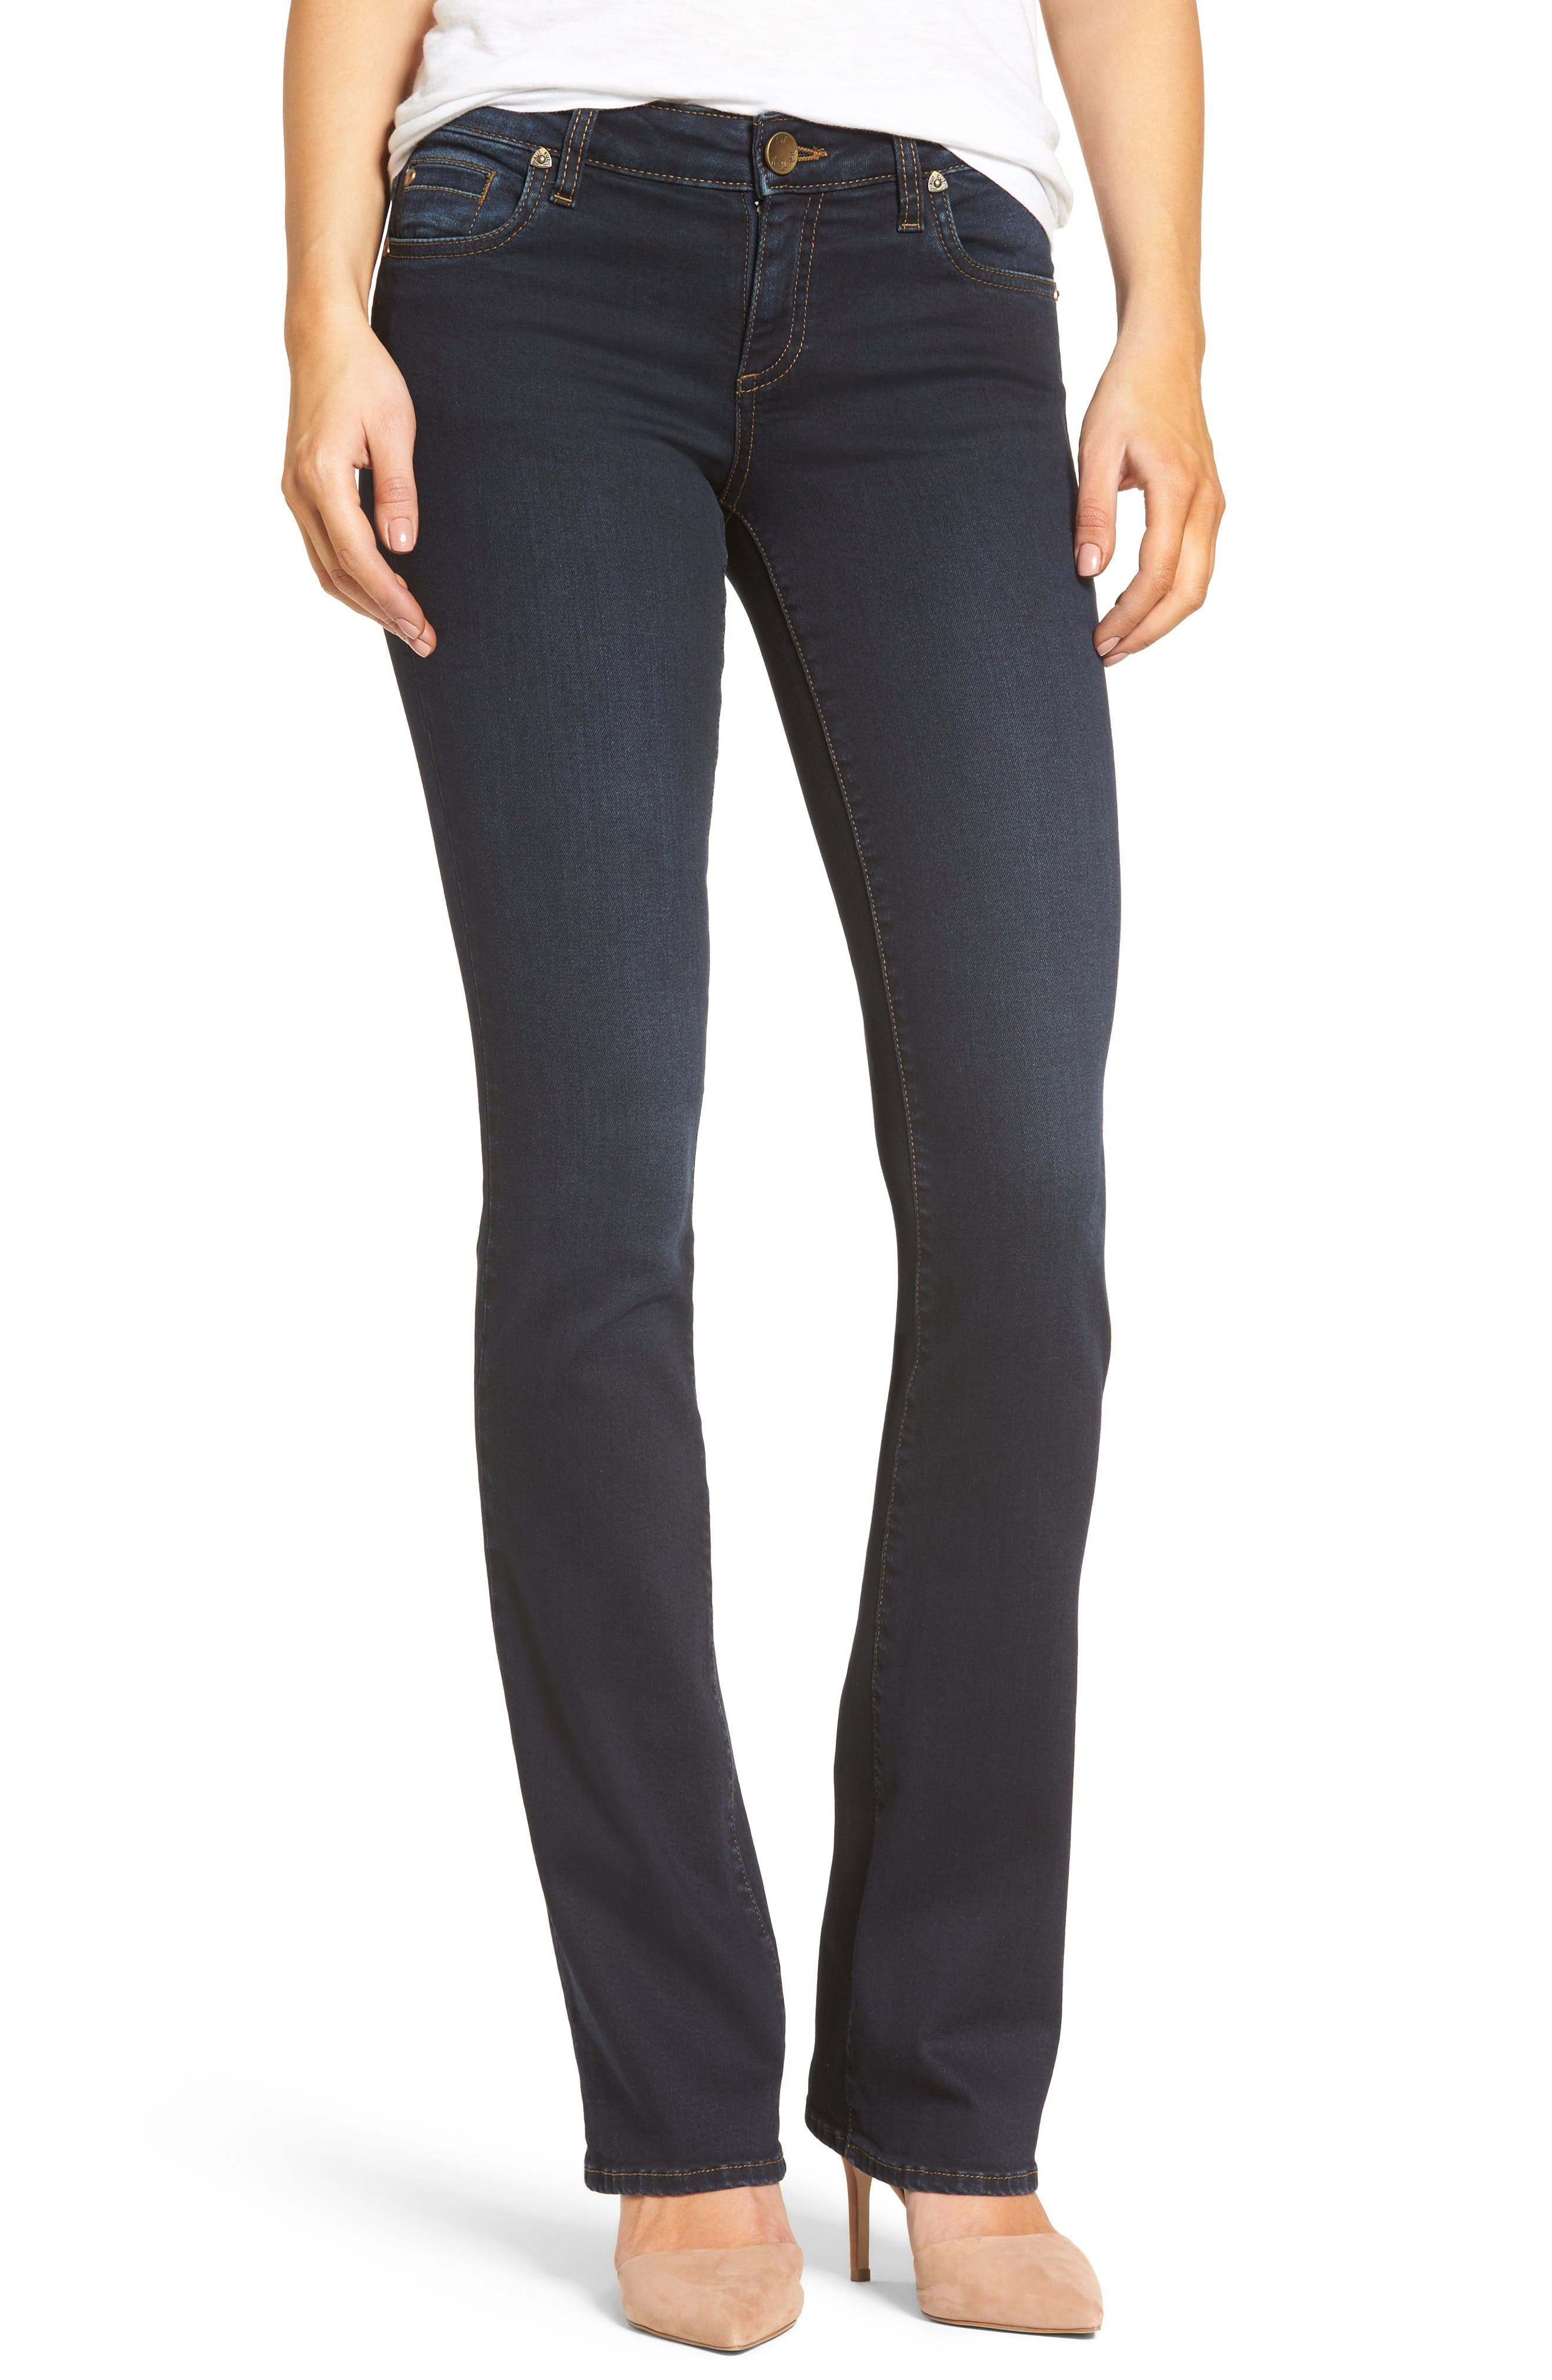 KUT from the Kloth Natalie Stretch Bootleg Jeans (Immeasurable) (Regular & Petite)